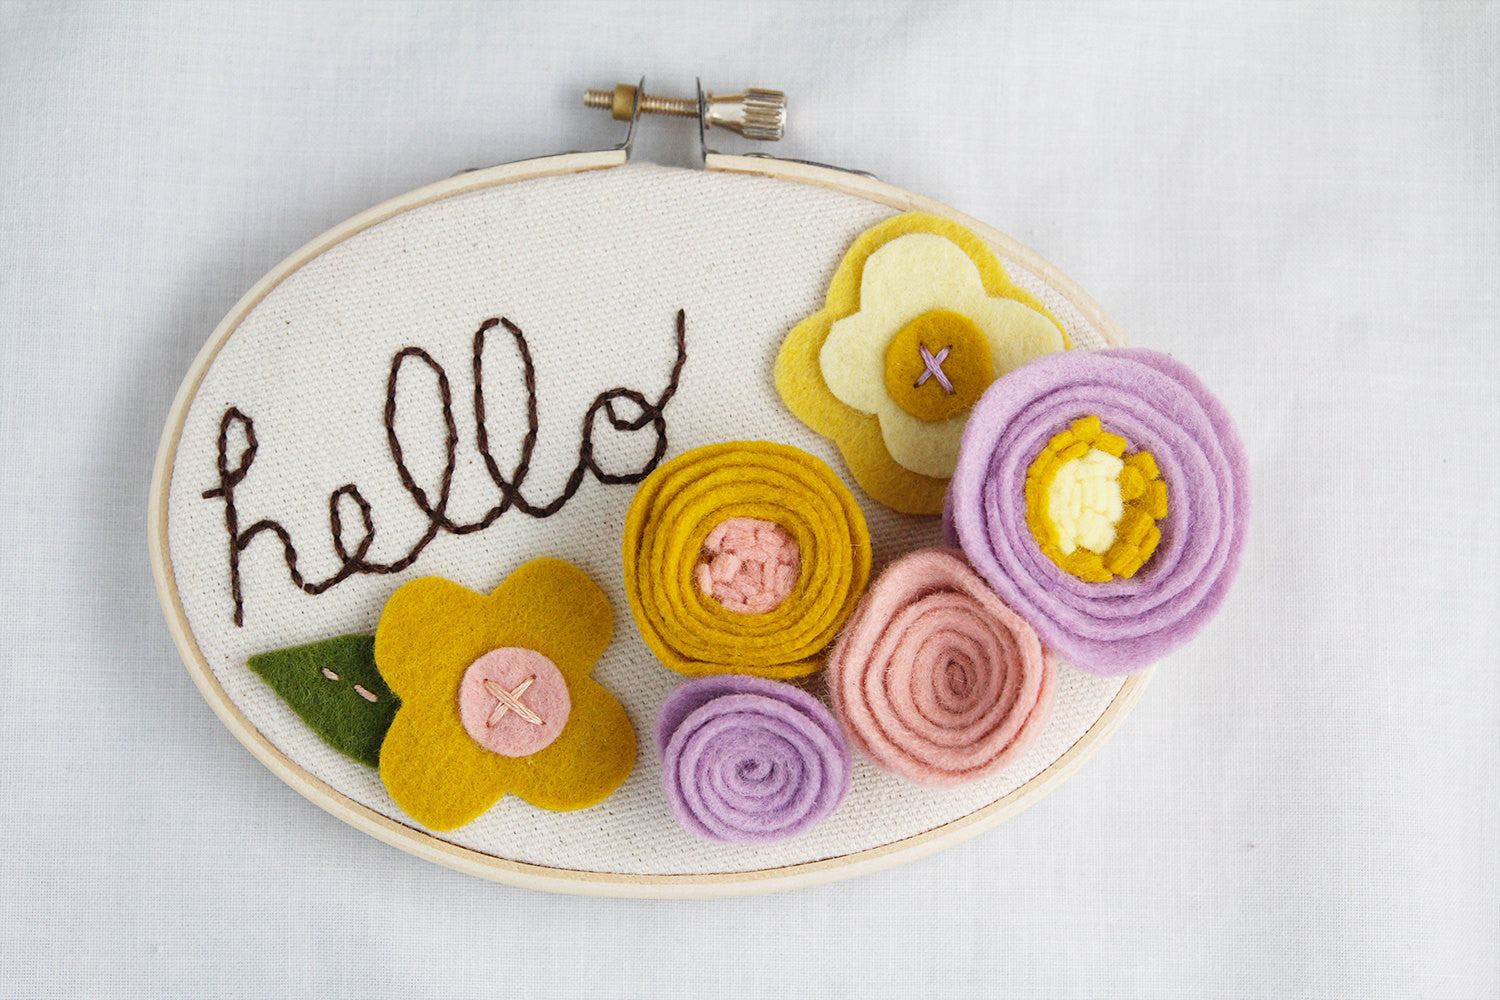 Floral Nursery Wall Art - 3D Wall Art - Hello Sign - Embroidery Hoop ...